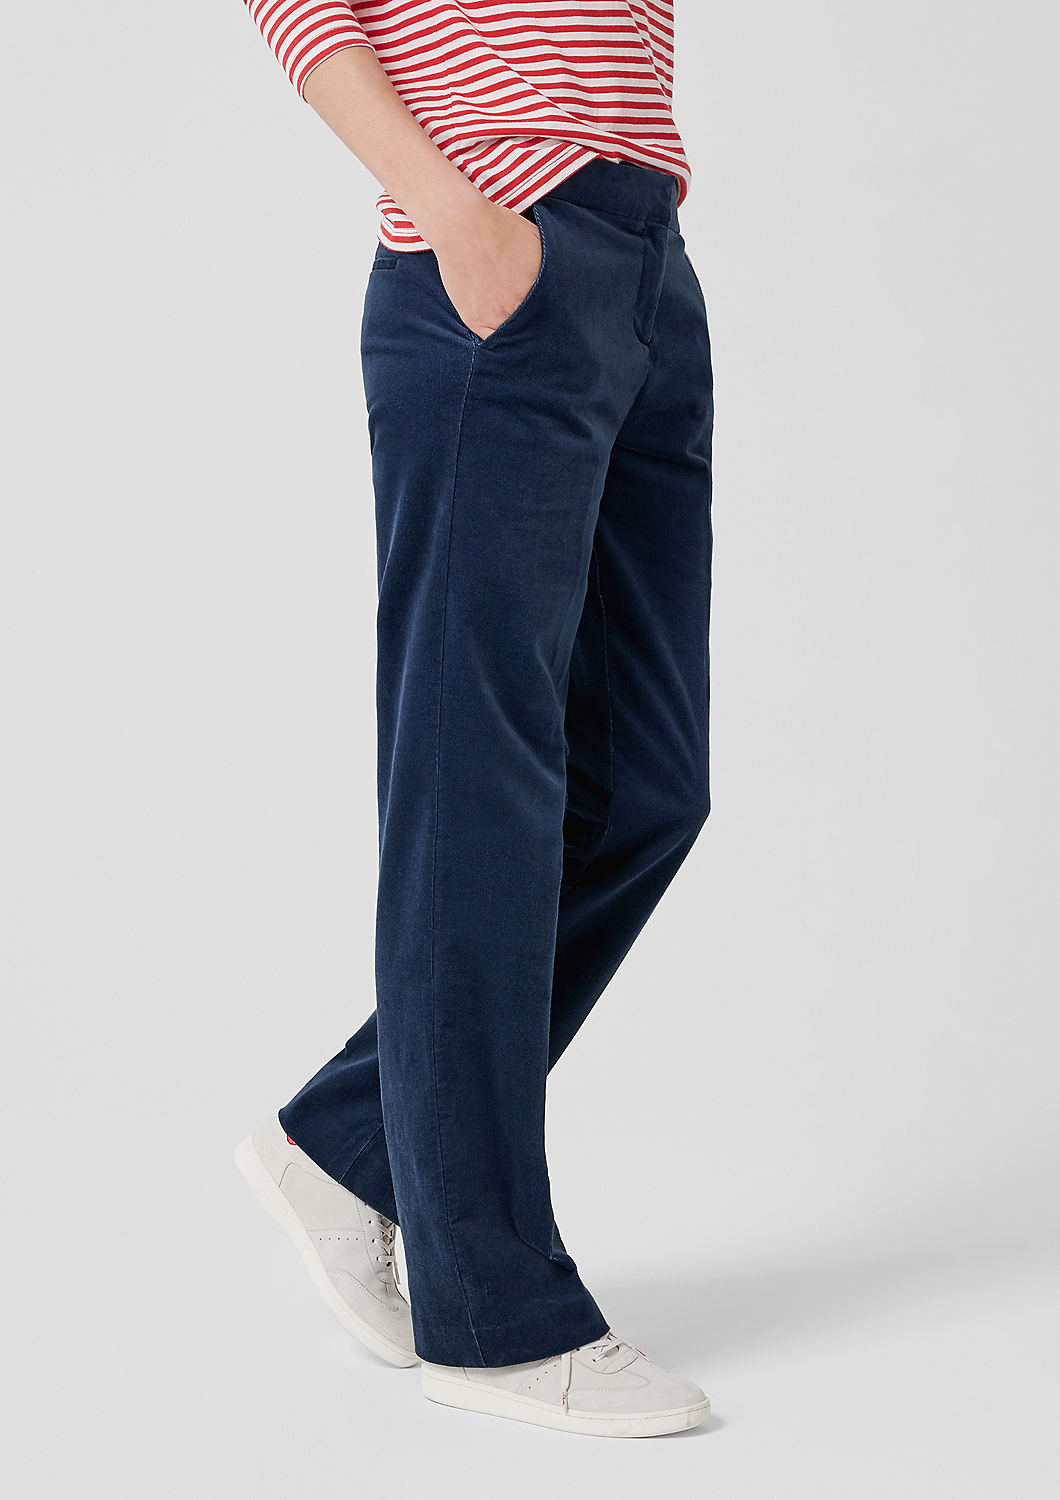 s.Oliver - Smart Straight: Cordhose - 7